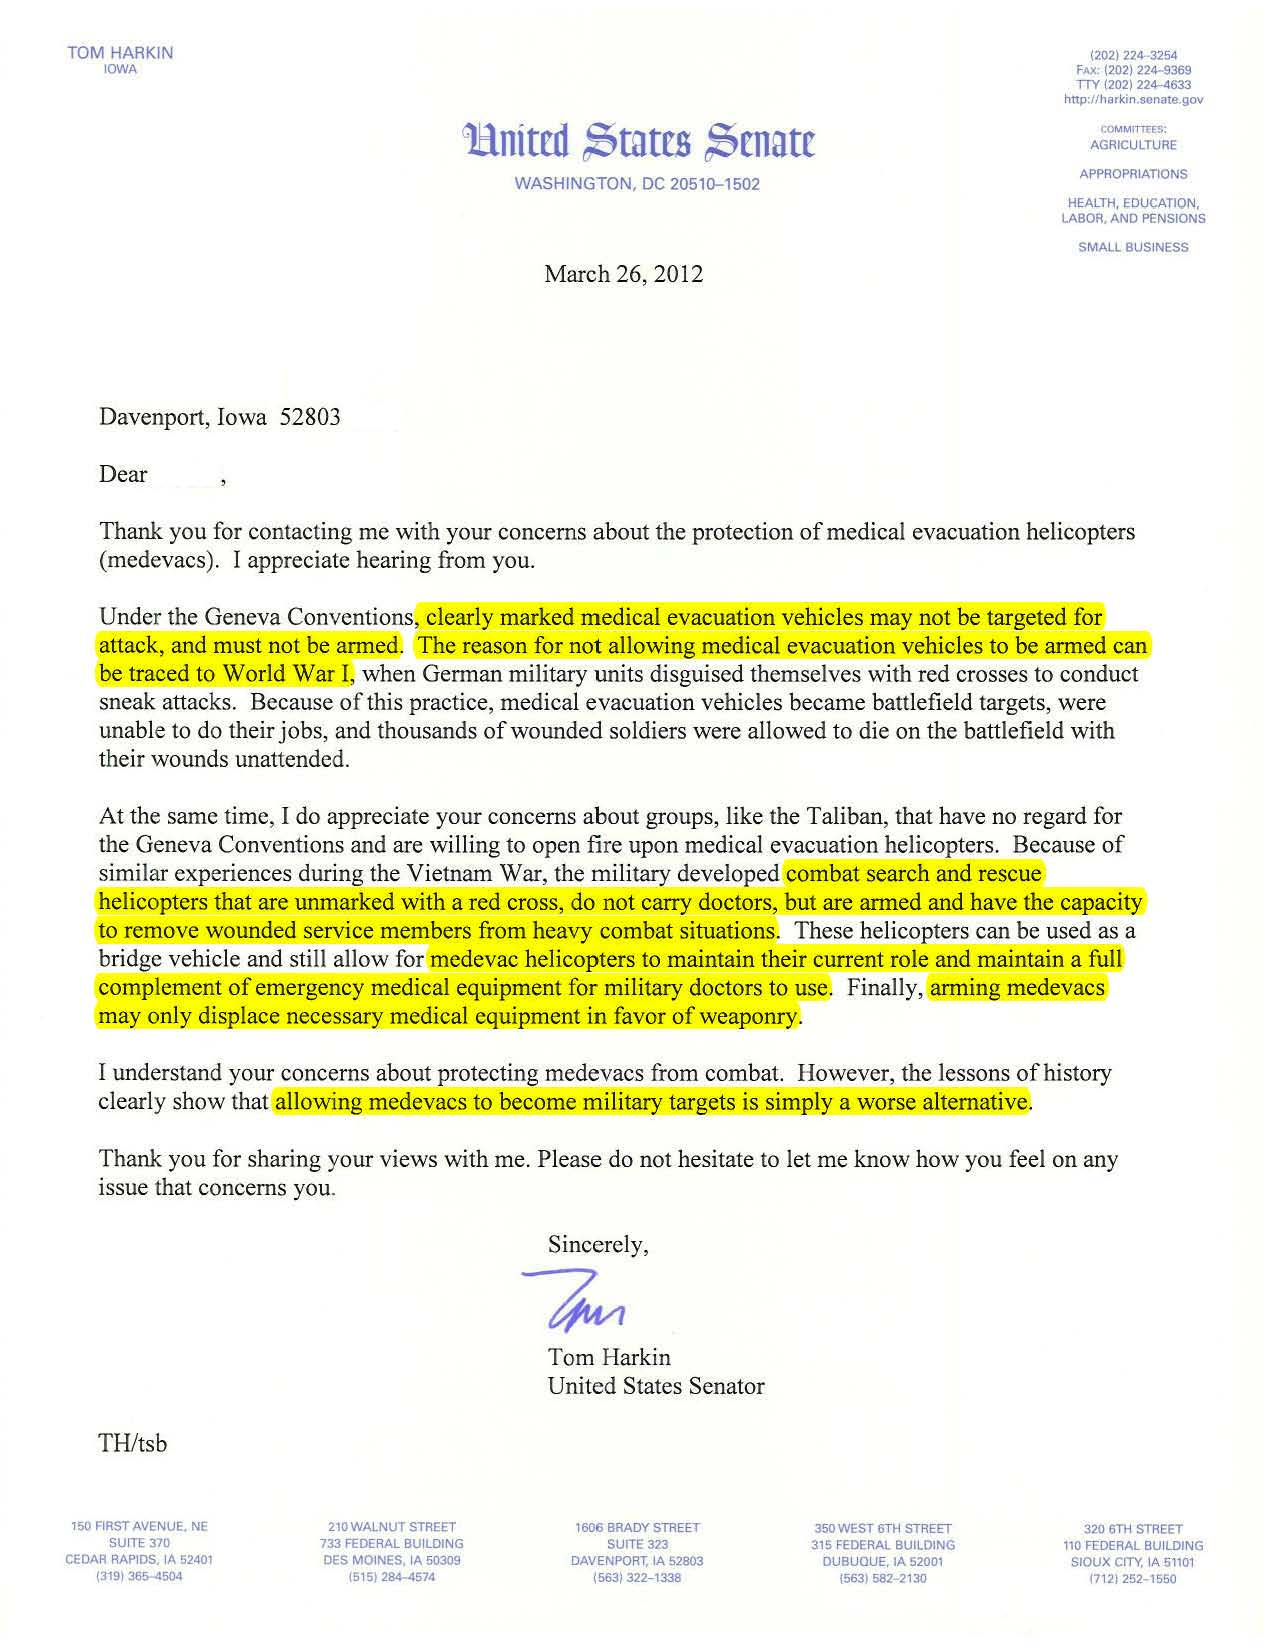 Constituent Letter Example